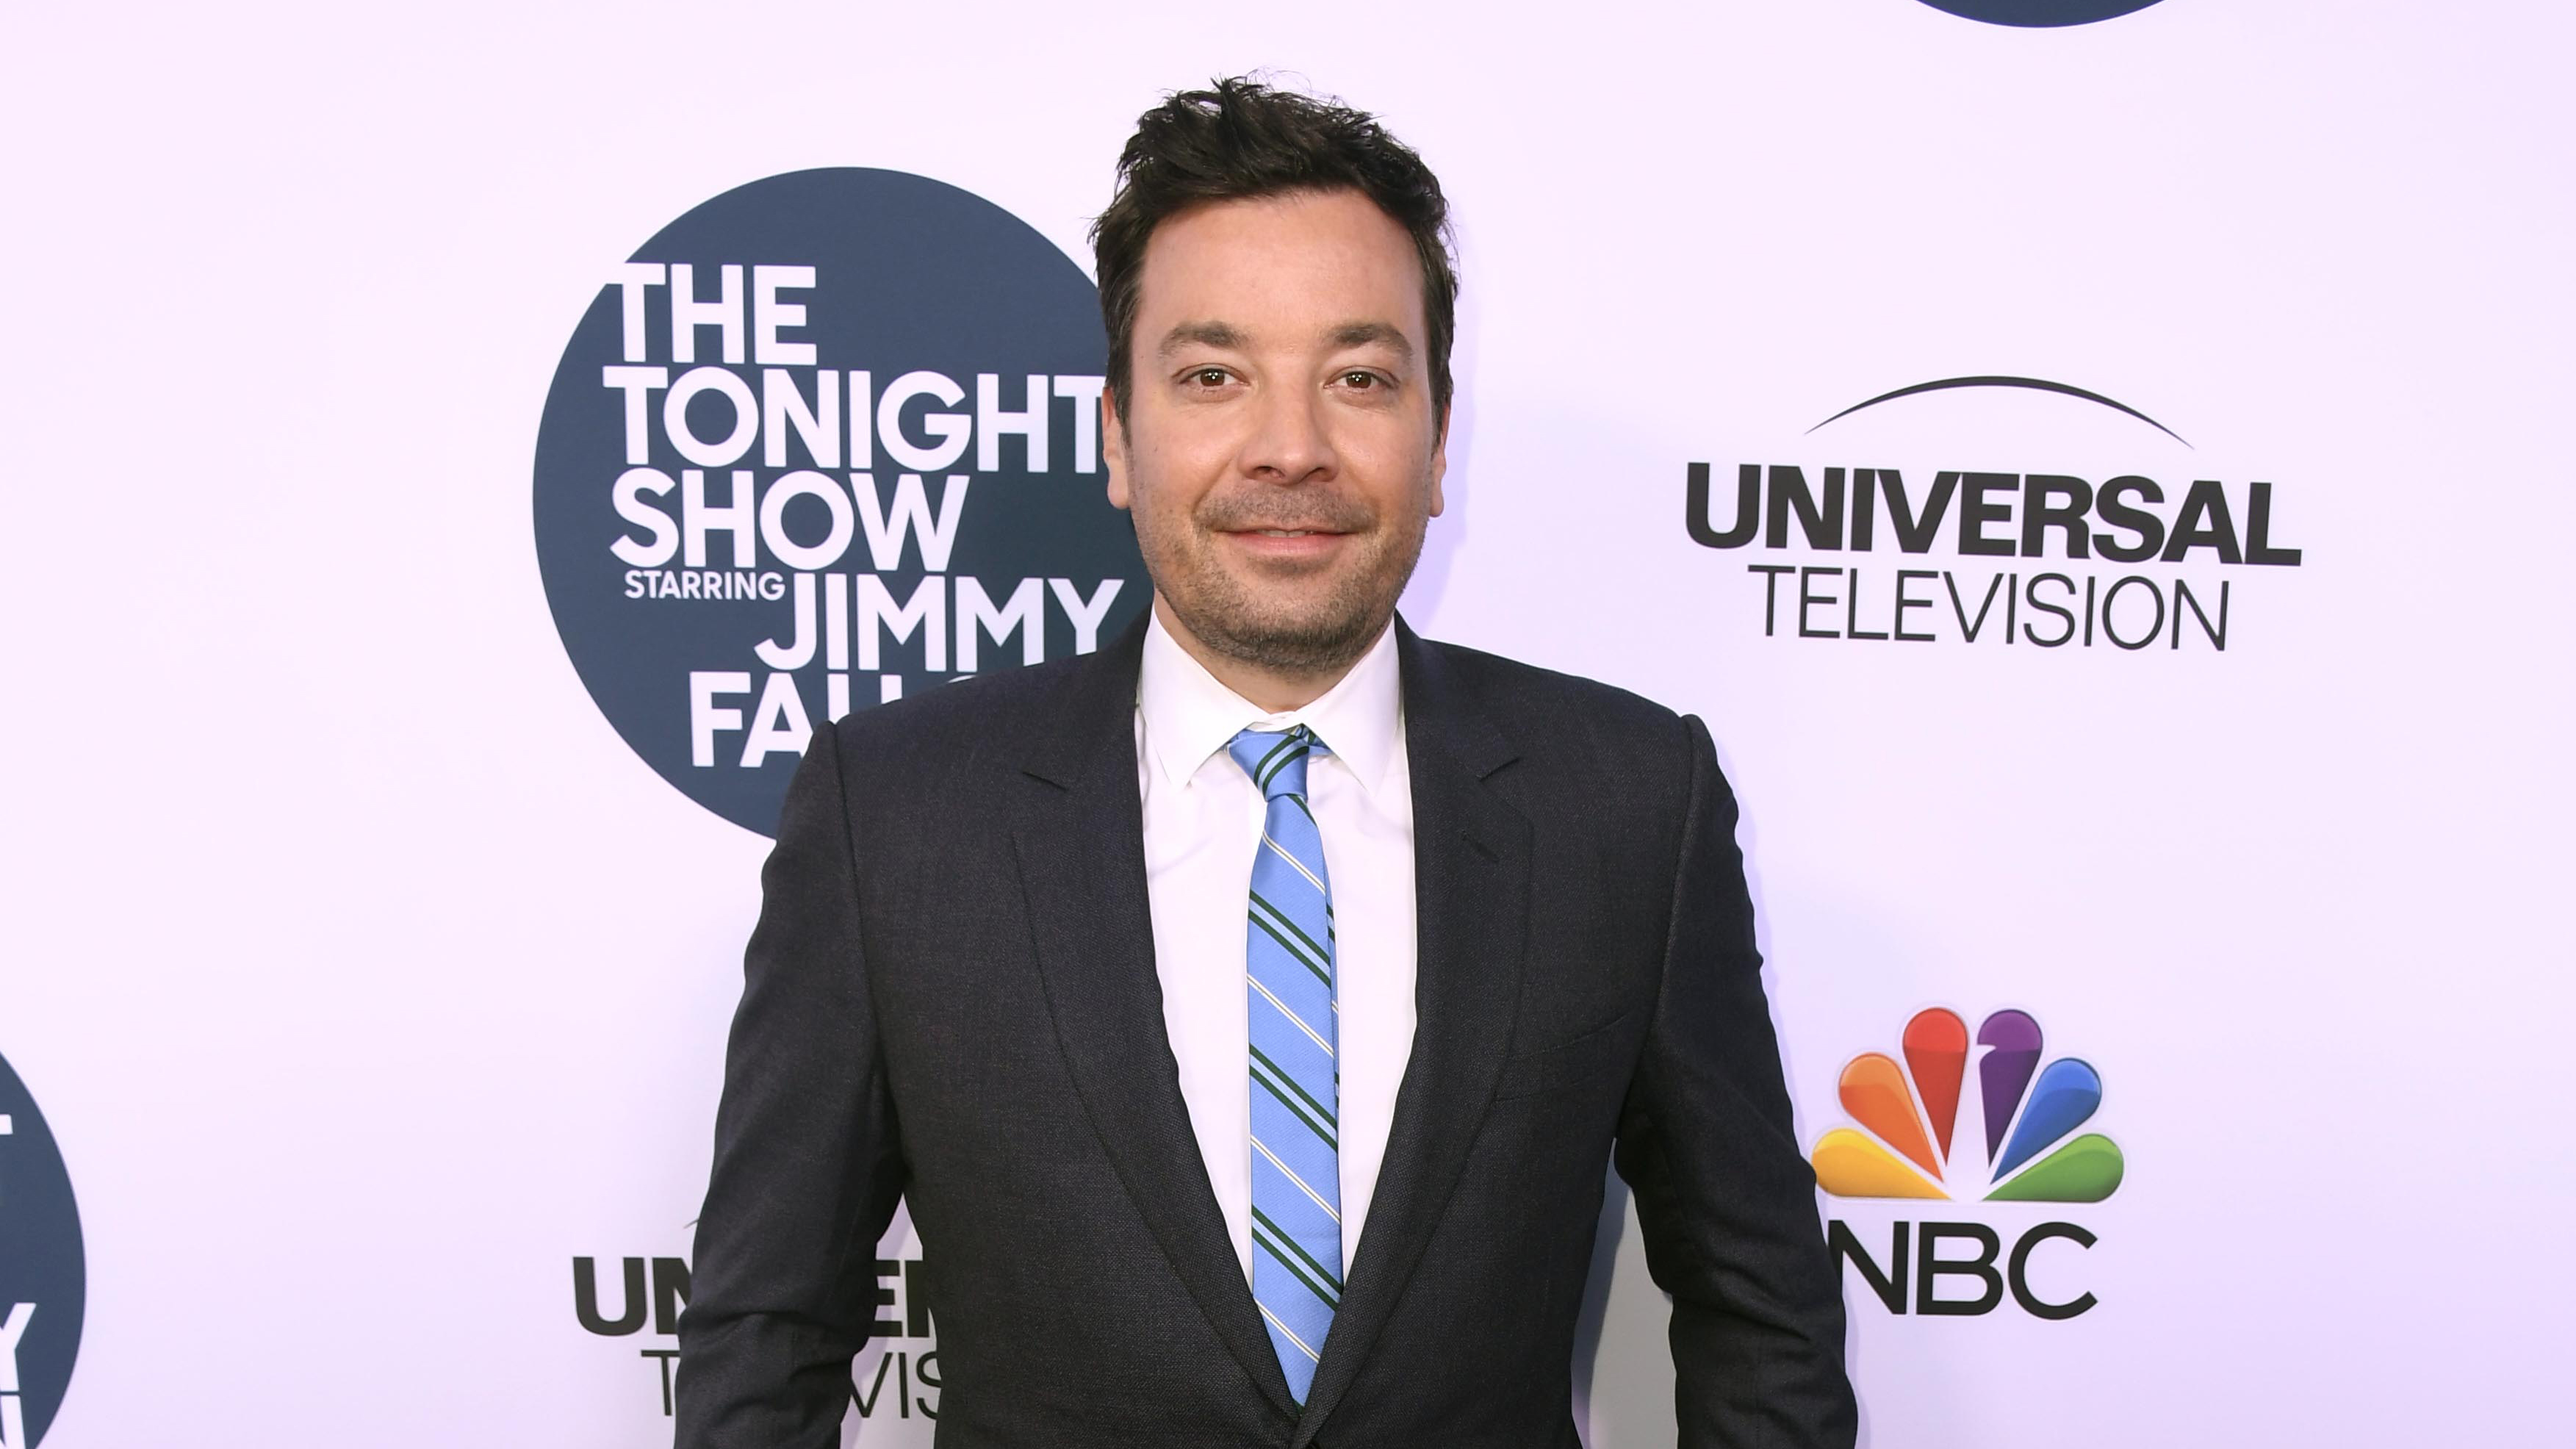 Westlake Legal Group jimmy-getty Jimmy Fallon says daughters are the 'reason I do anything' ahead of Super Bowl commercial debut Melissa Roberto fox-news/news-events/super-bowl fox-news/entertainment/tv fox-news/entertainment/celebrity-news fox-news/entertainment fox news fnc/entertainment fnc article 0368a8a0-0704-57a1-970f-49aac7224e7a